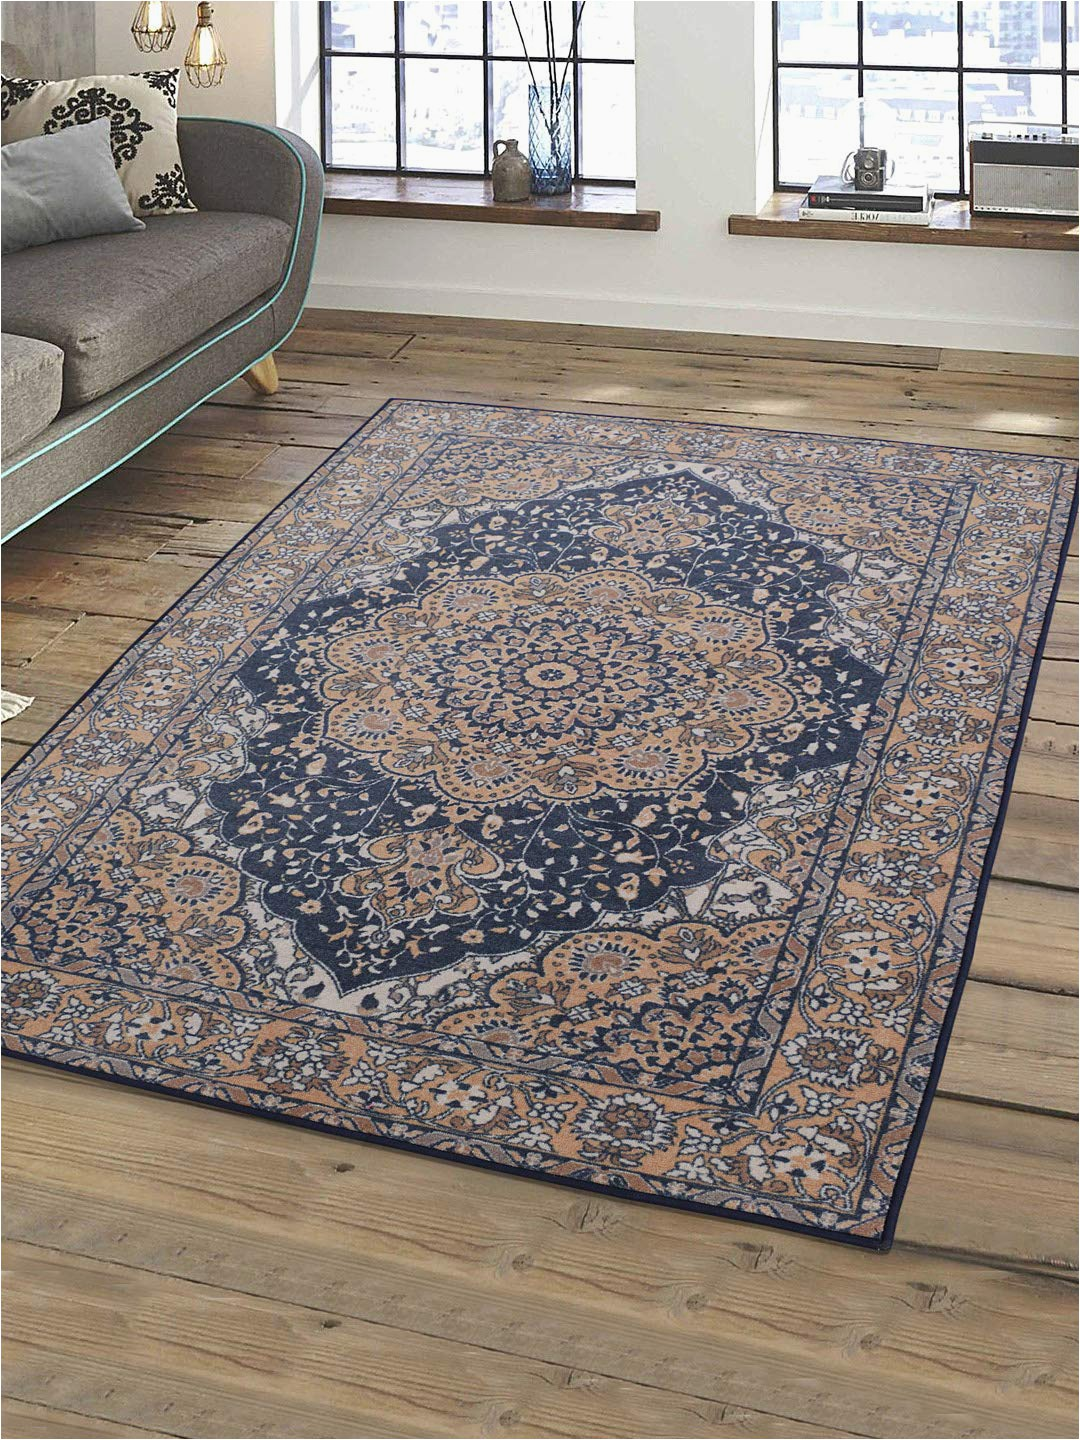 4×6 Non Skid area Rug Buy Rugsmith solid Pattern 4 X 6 Feet area Rug Line at Low